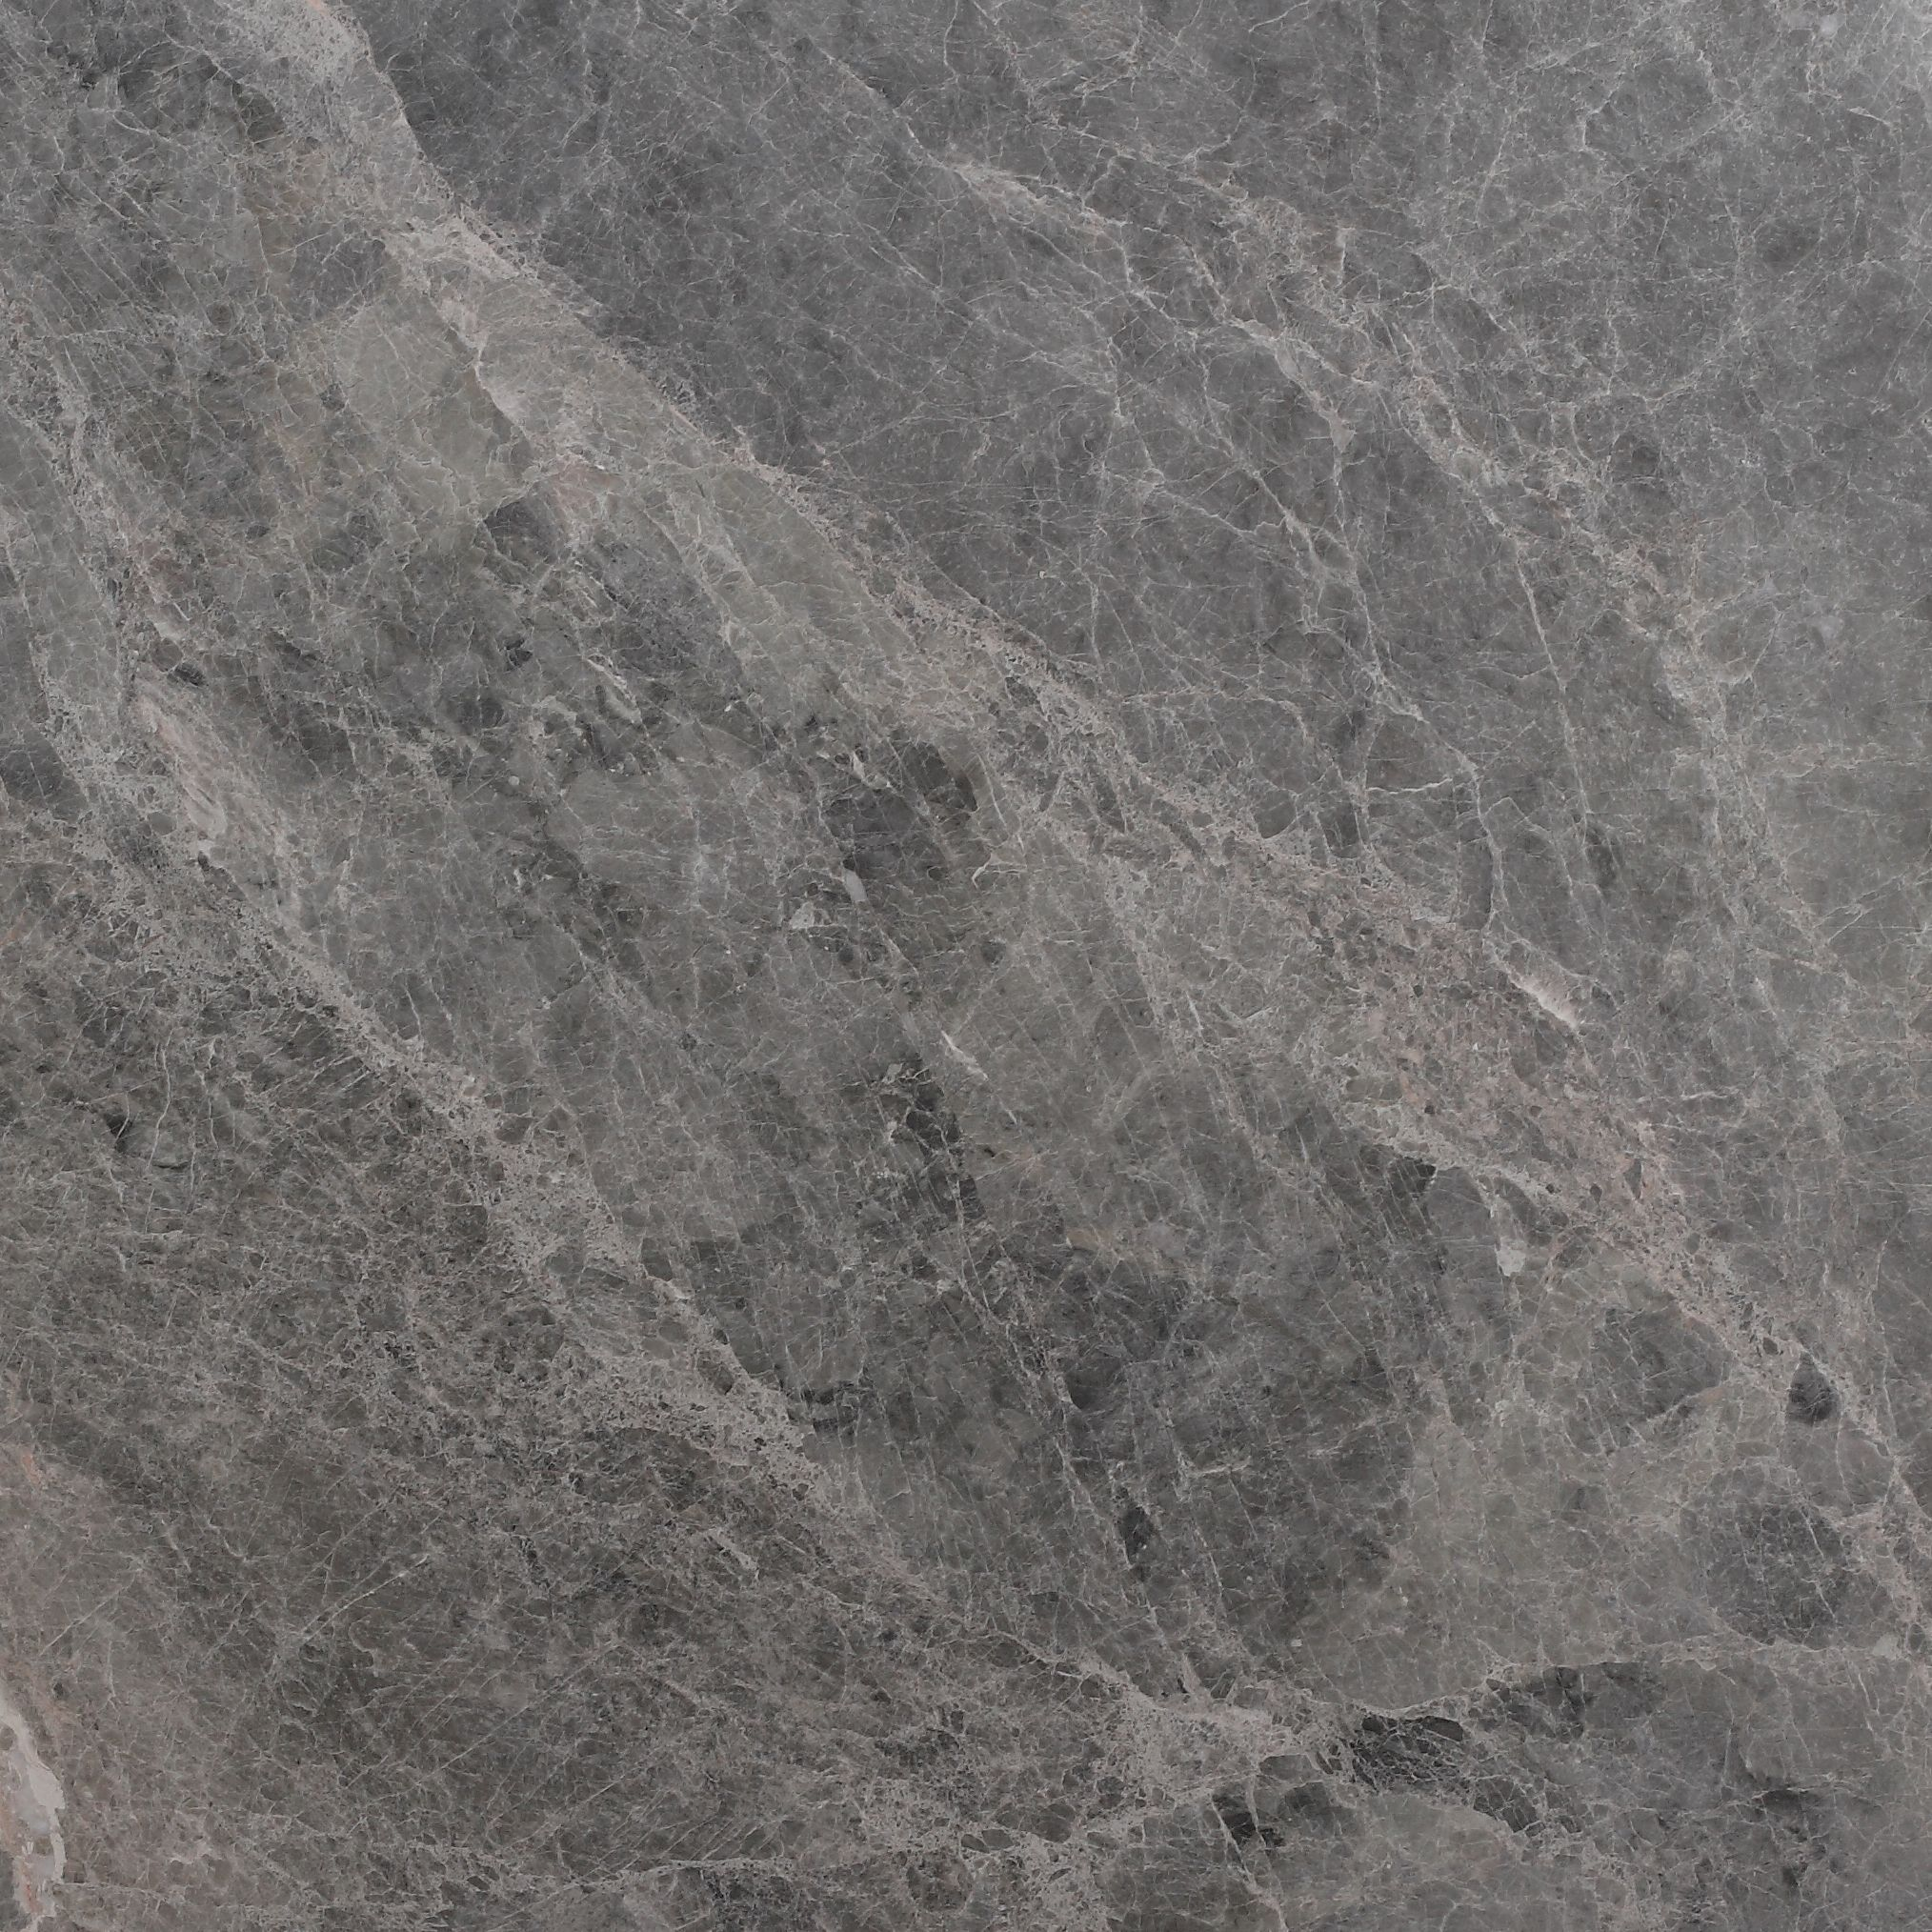 Pin By Ace Lin On Stone Material Textures Stone Pattern Marble Texture